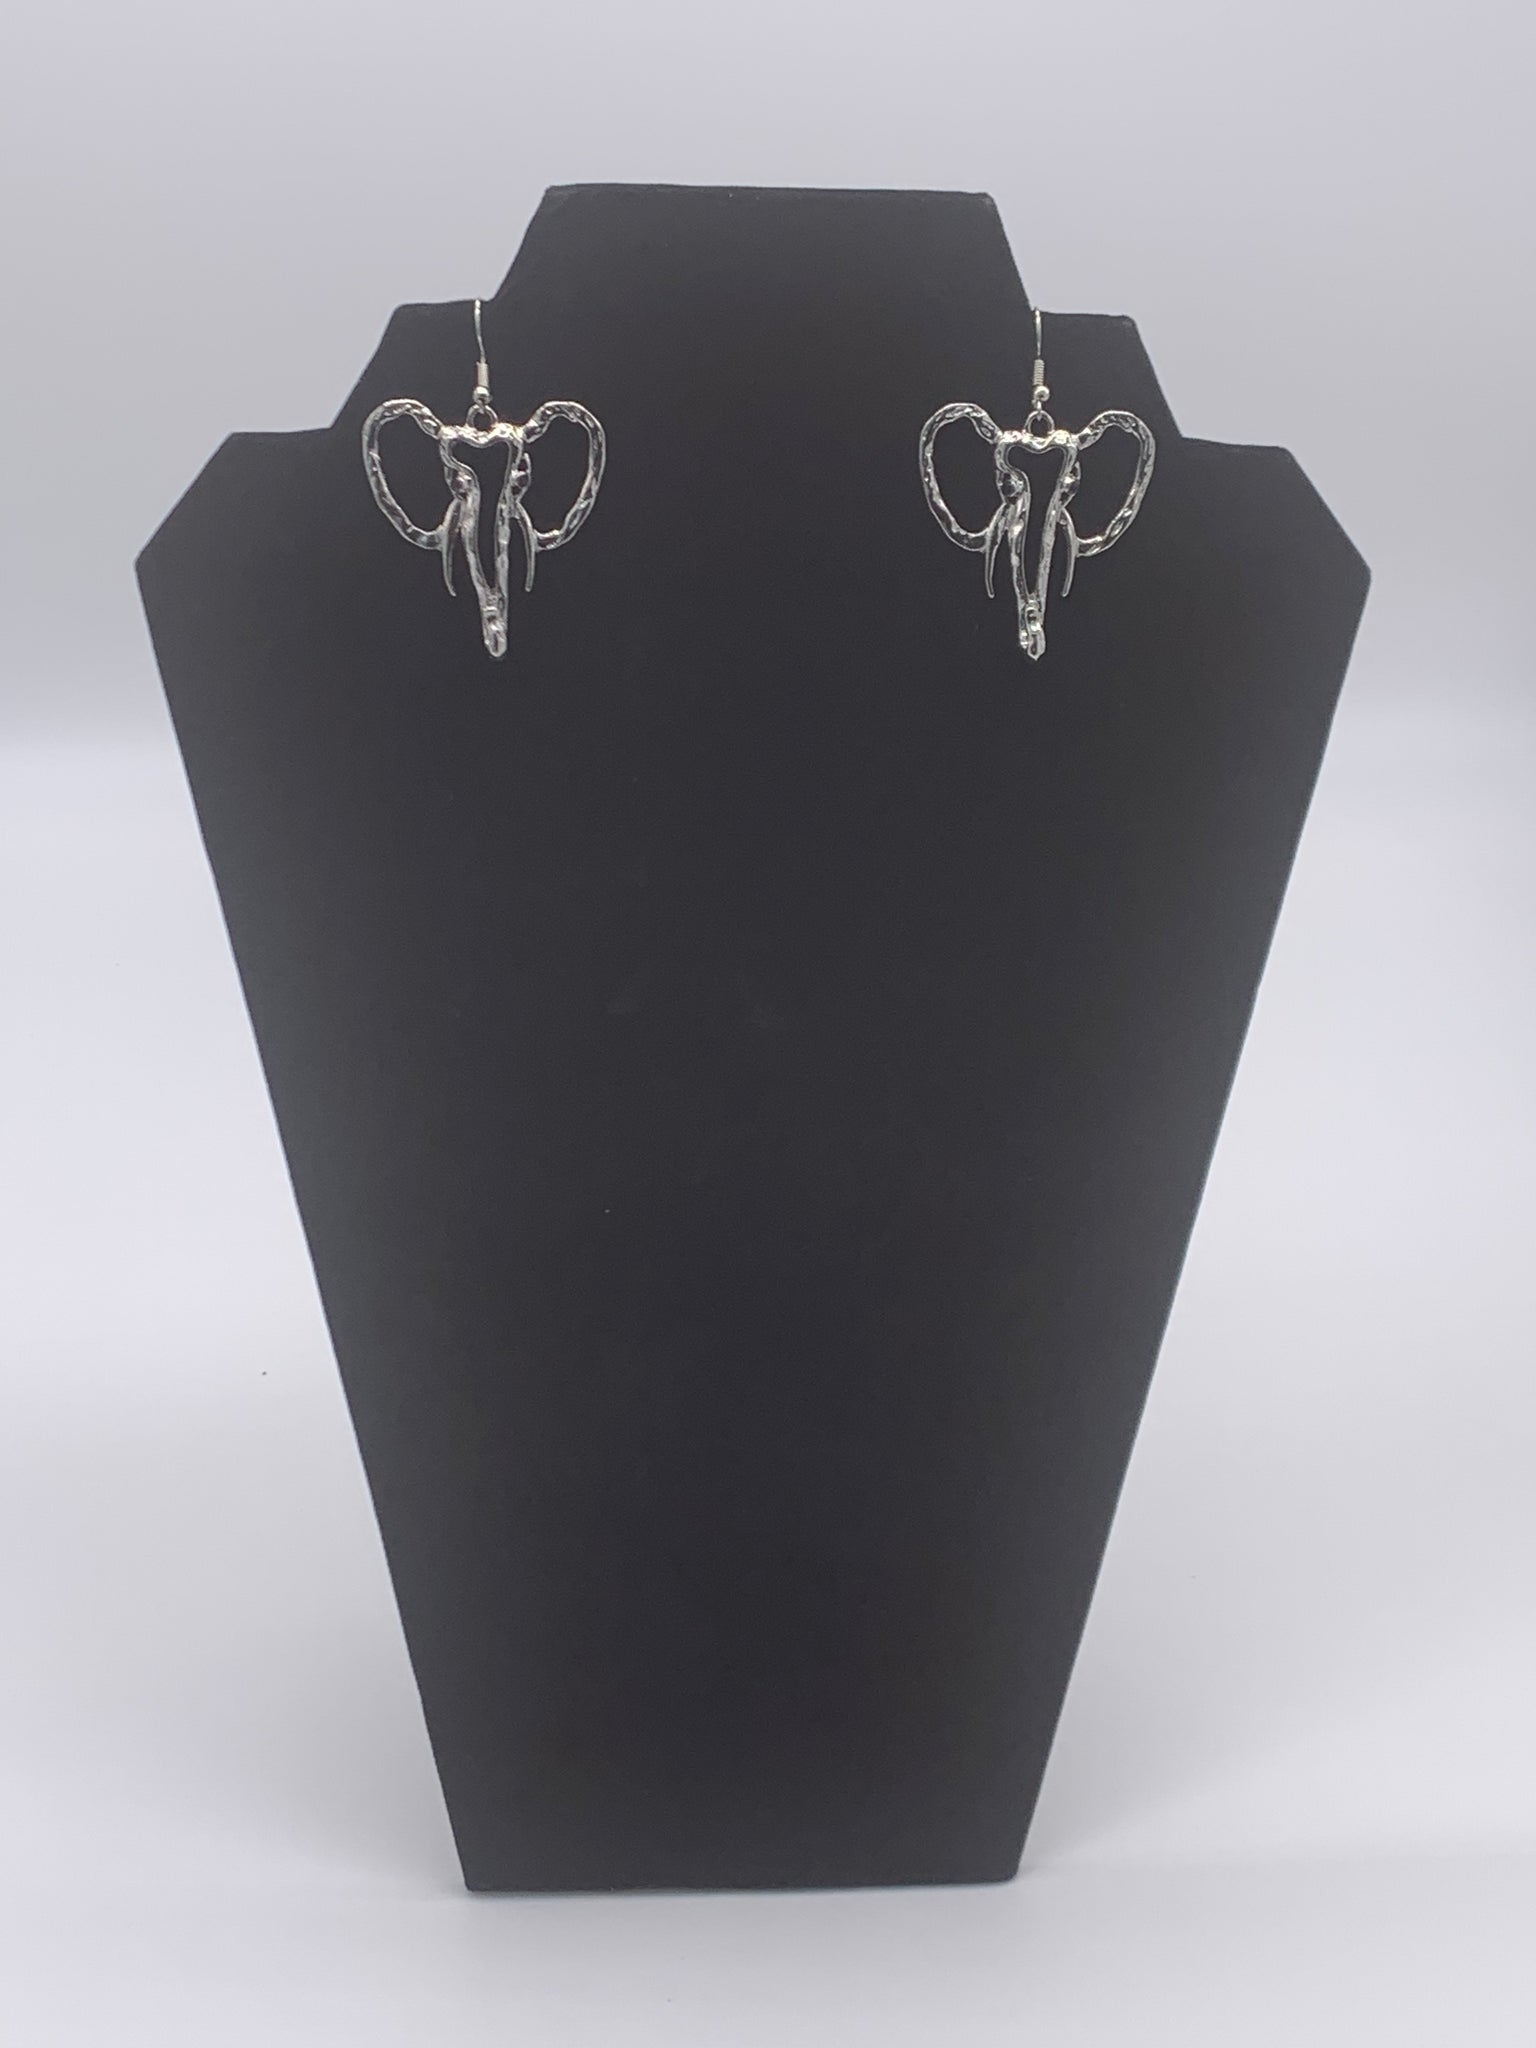 GLAM - On the Edge Elephant Earrings (Silver)